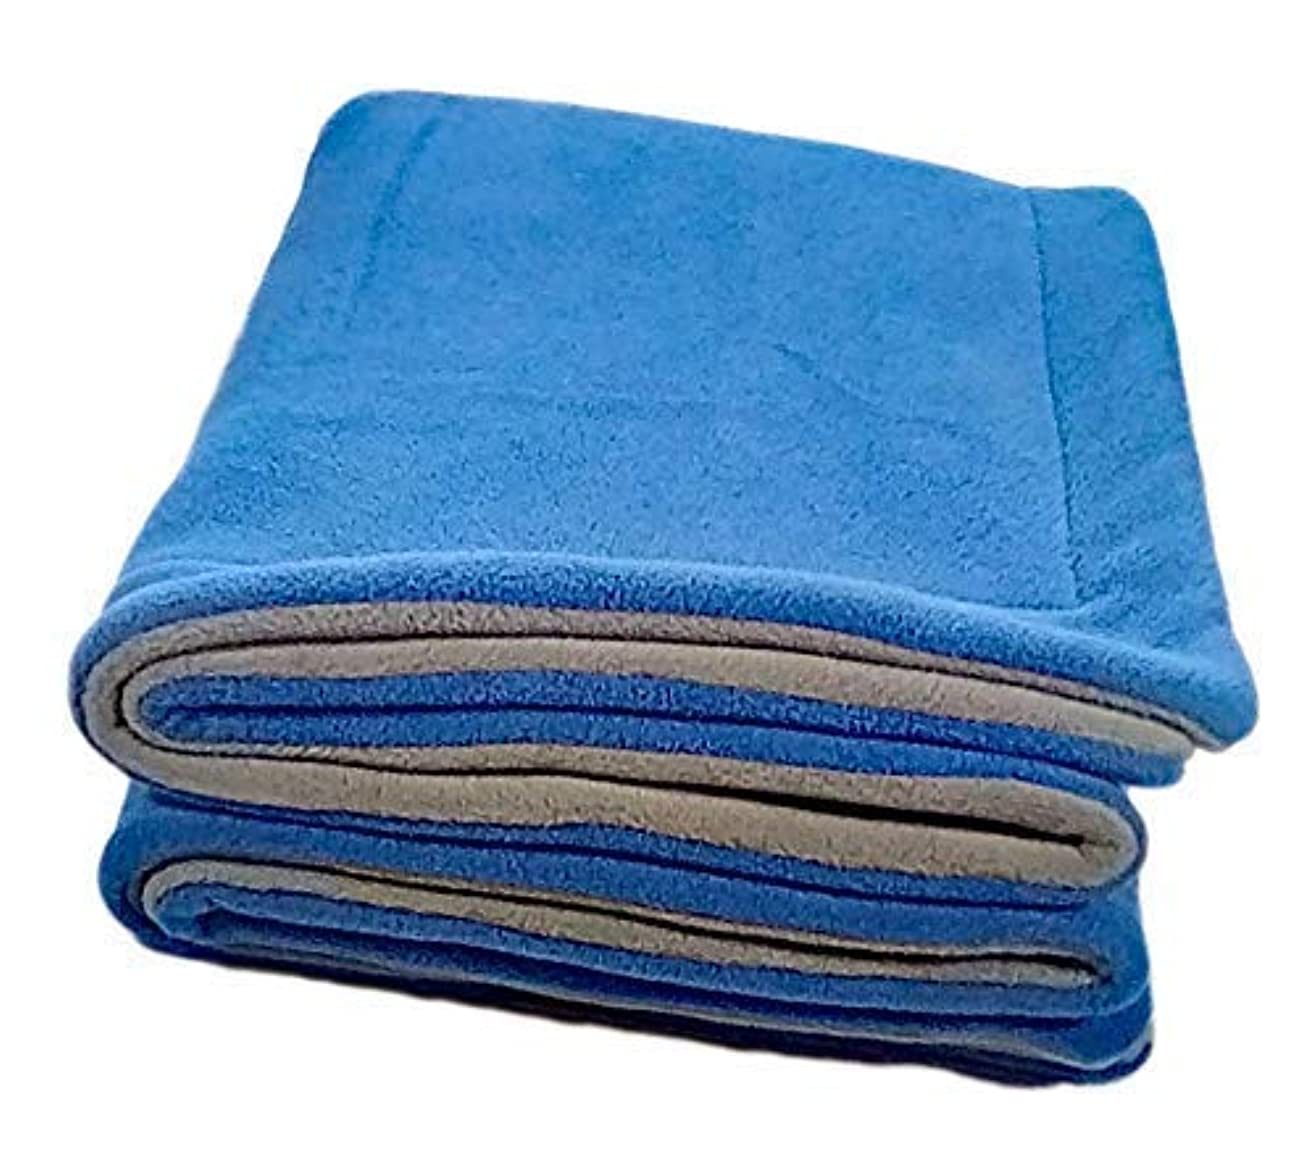 Midwest Habit Anti-Pill Fleece Cage Liner - Guinea Pig Fleece Bedding - Choose Color - Machine Wash - Made in USA